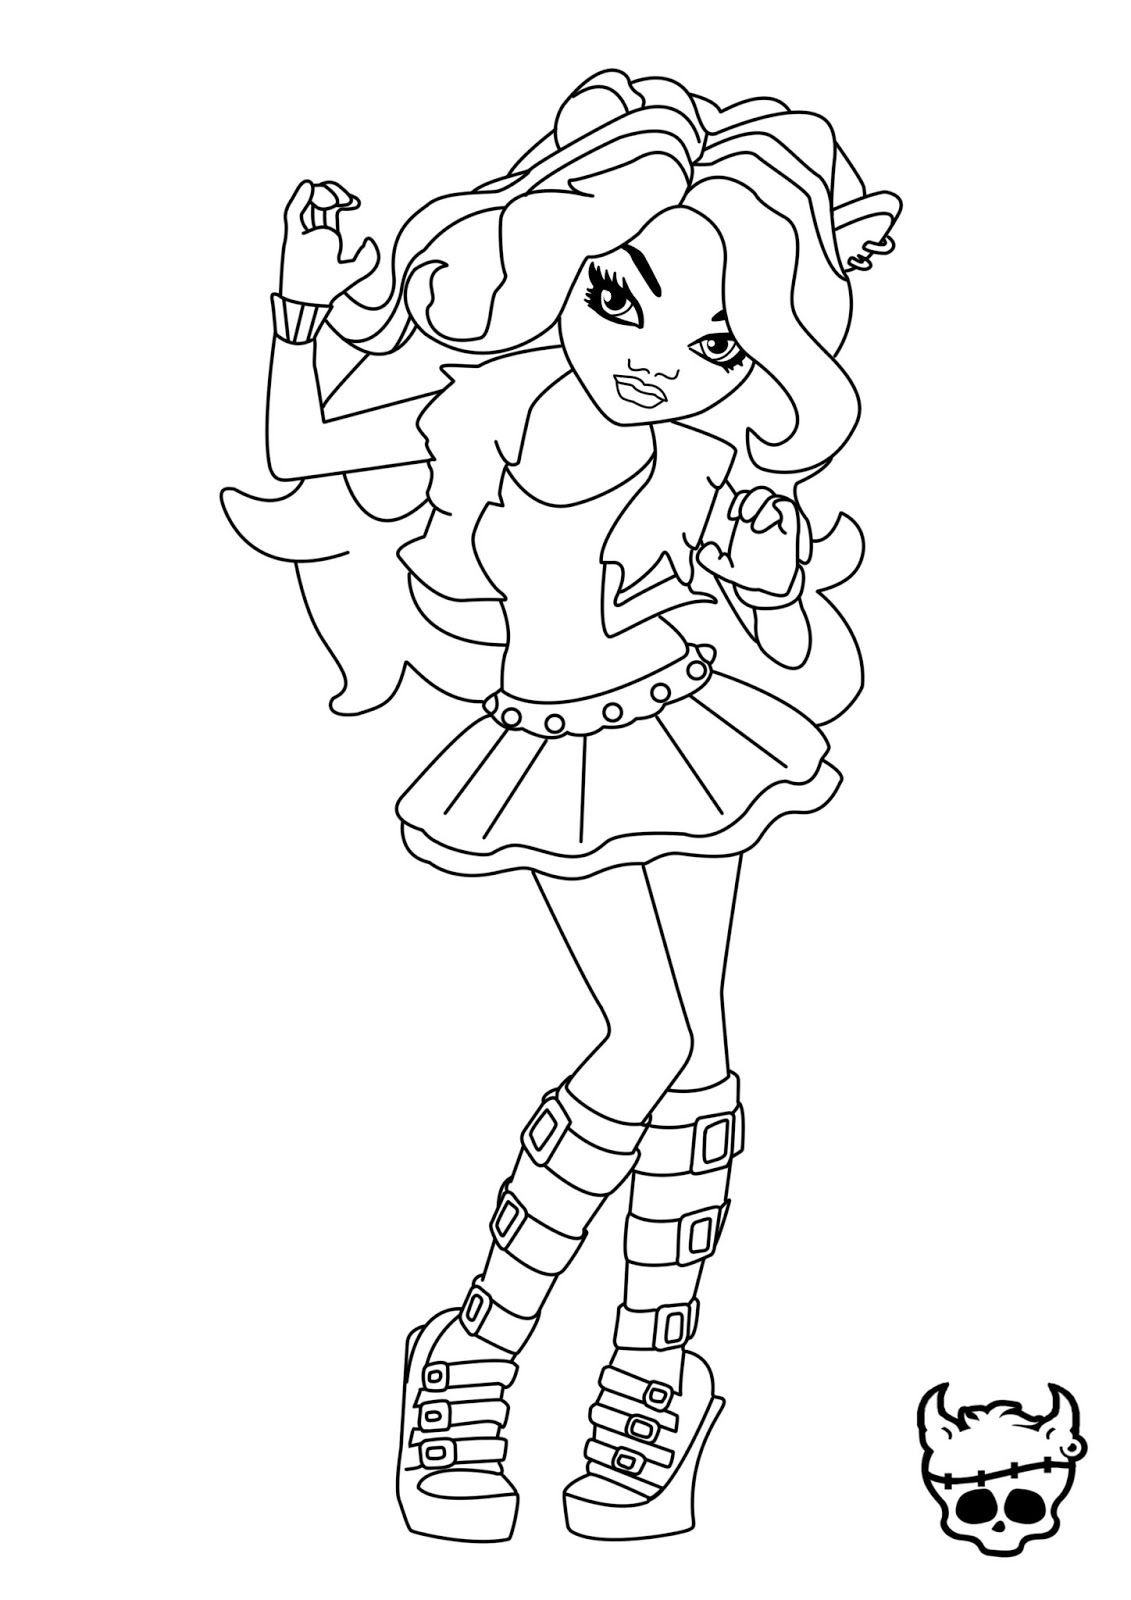 monster high clawdeen wolf coloring pages 5 | Coloring pages ...